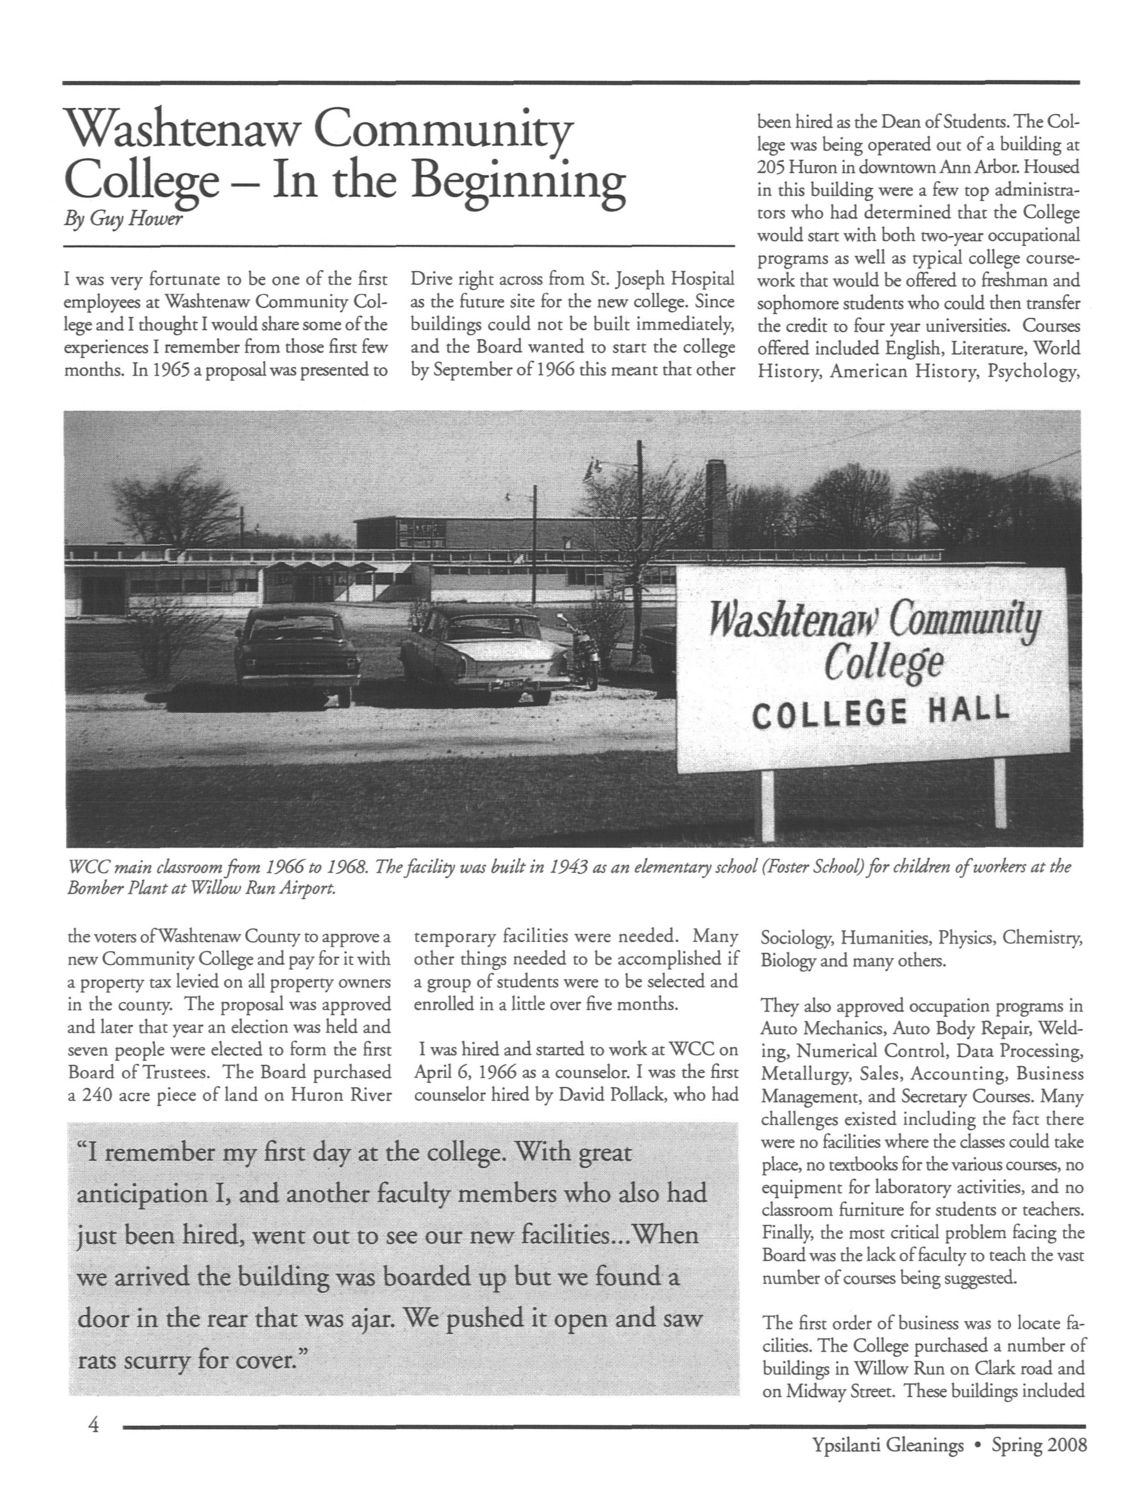 Washtenaw Community College-In the Beginning image